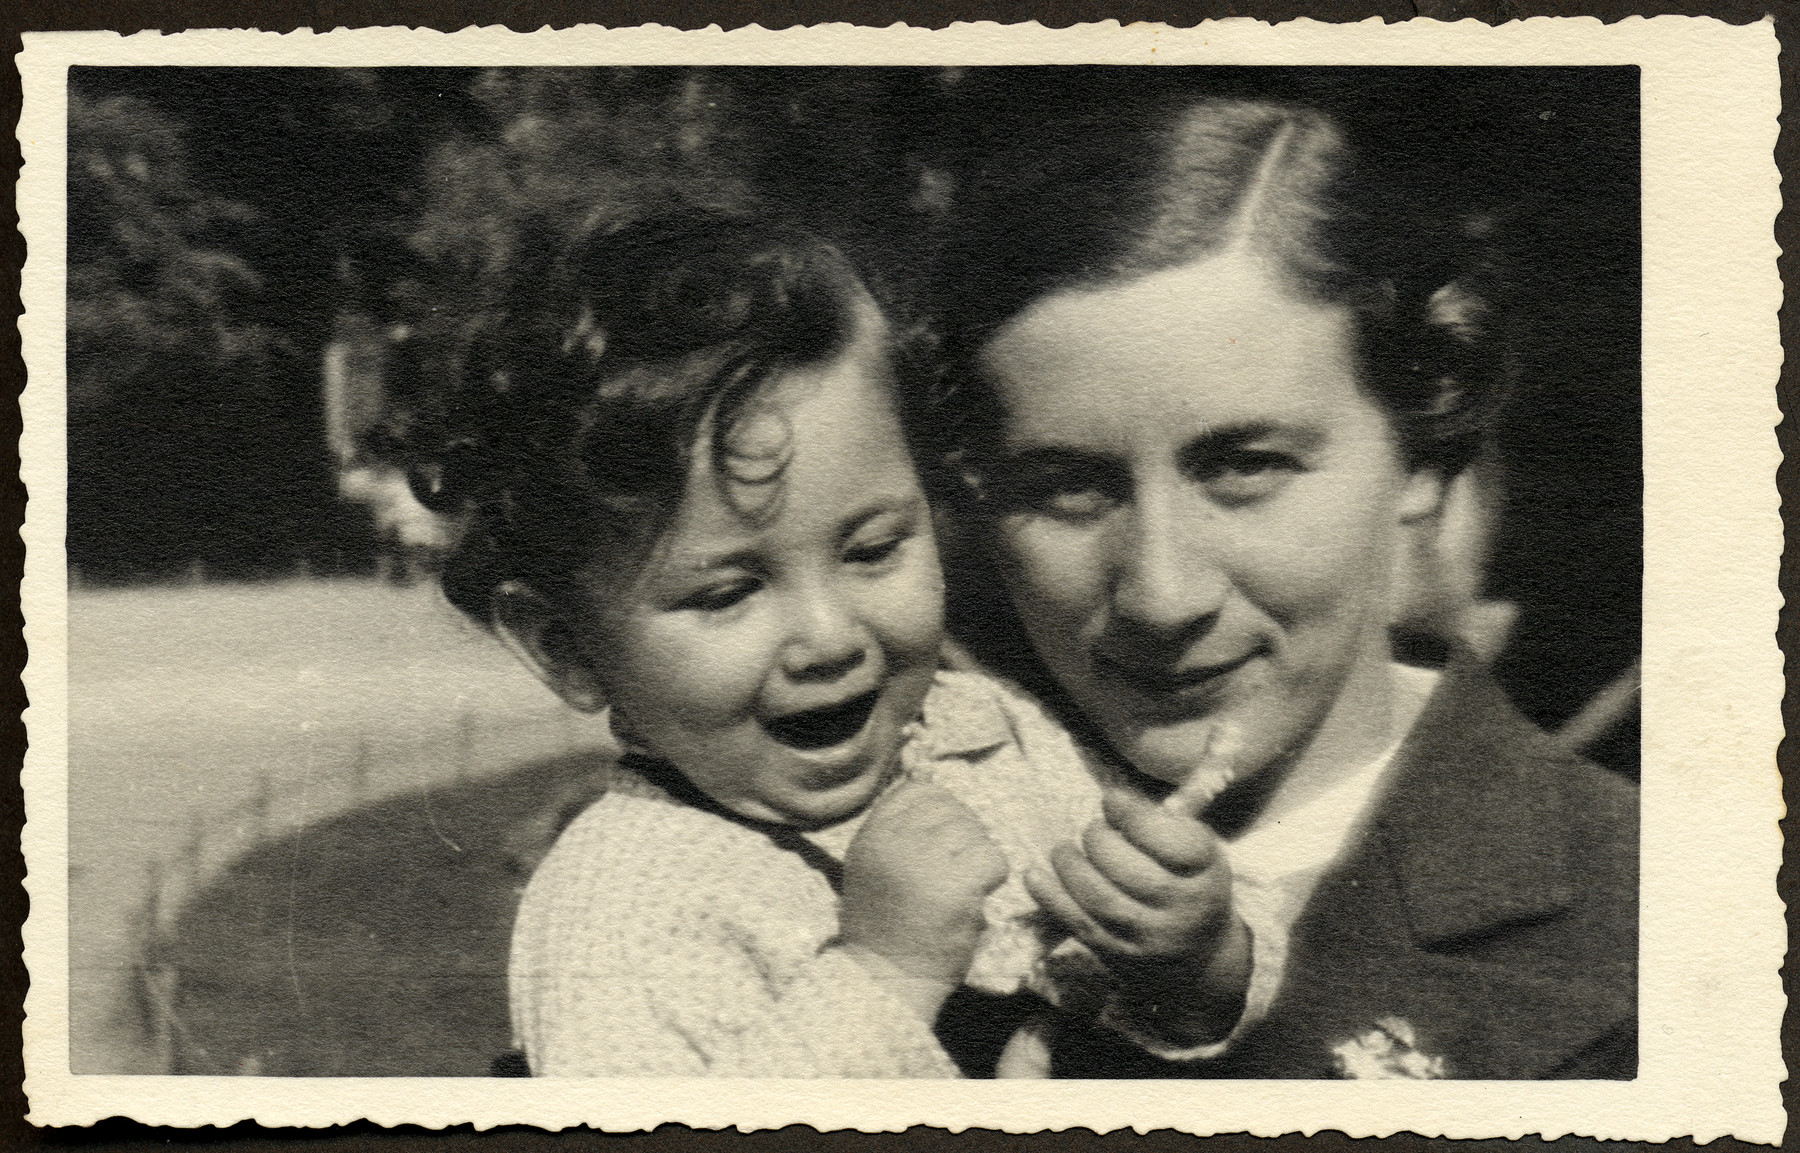 Magda Klein holds her young nephew Manny Mandel.